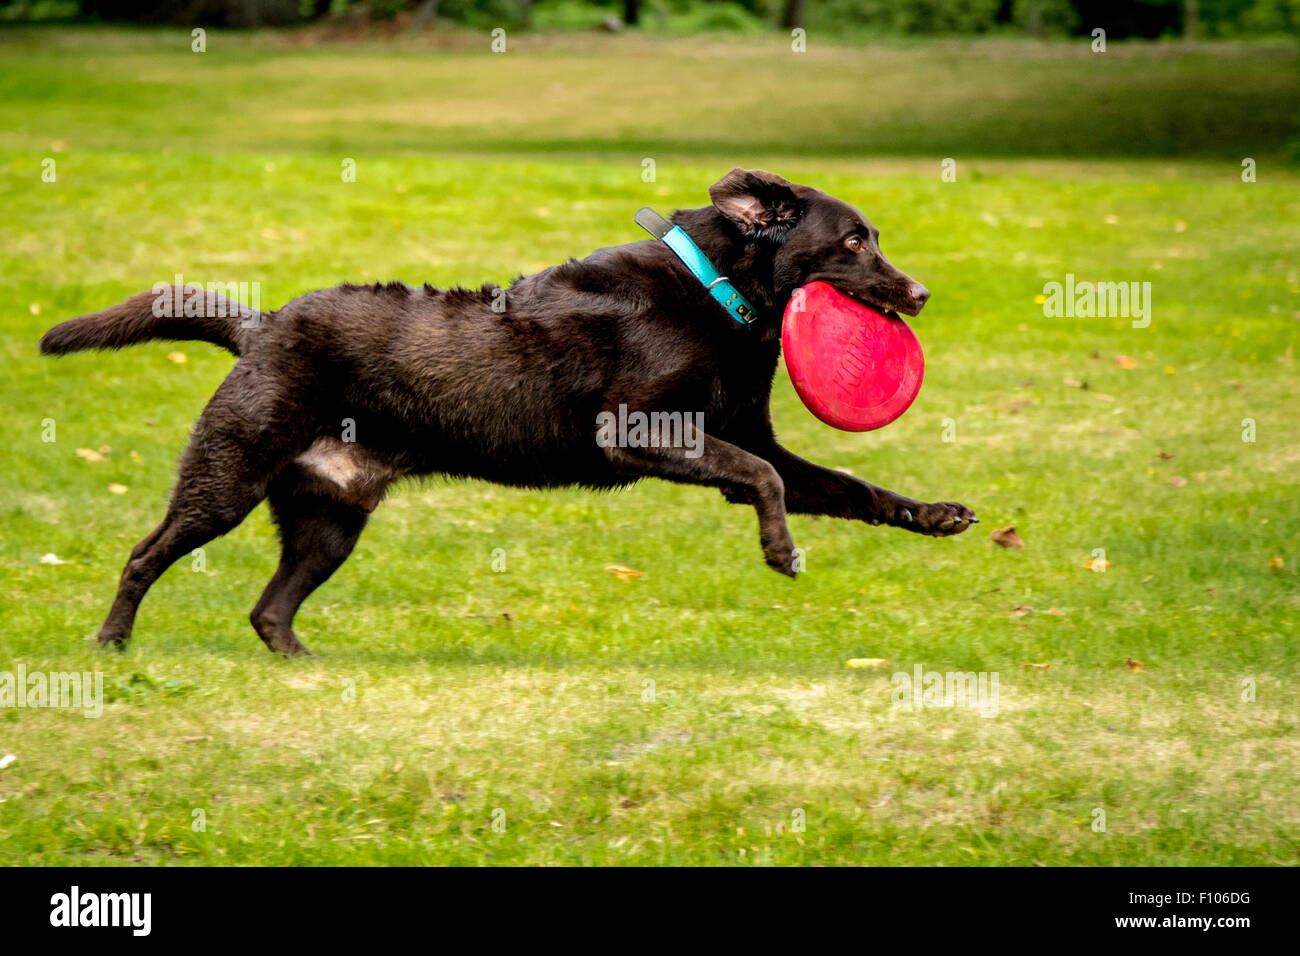 Chocolate Labrador Running in a Park with a toy - Stock Image